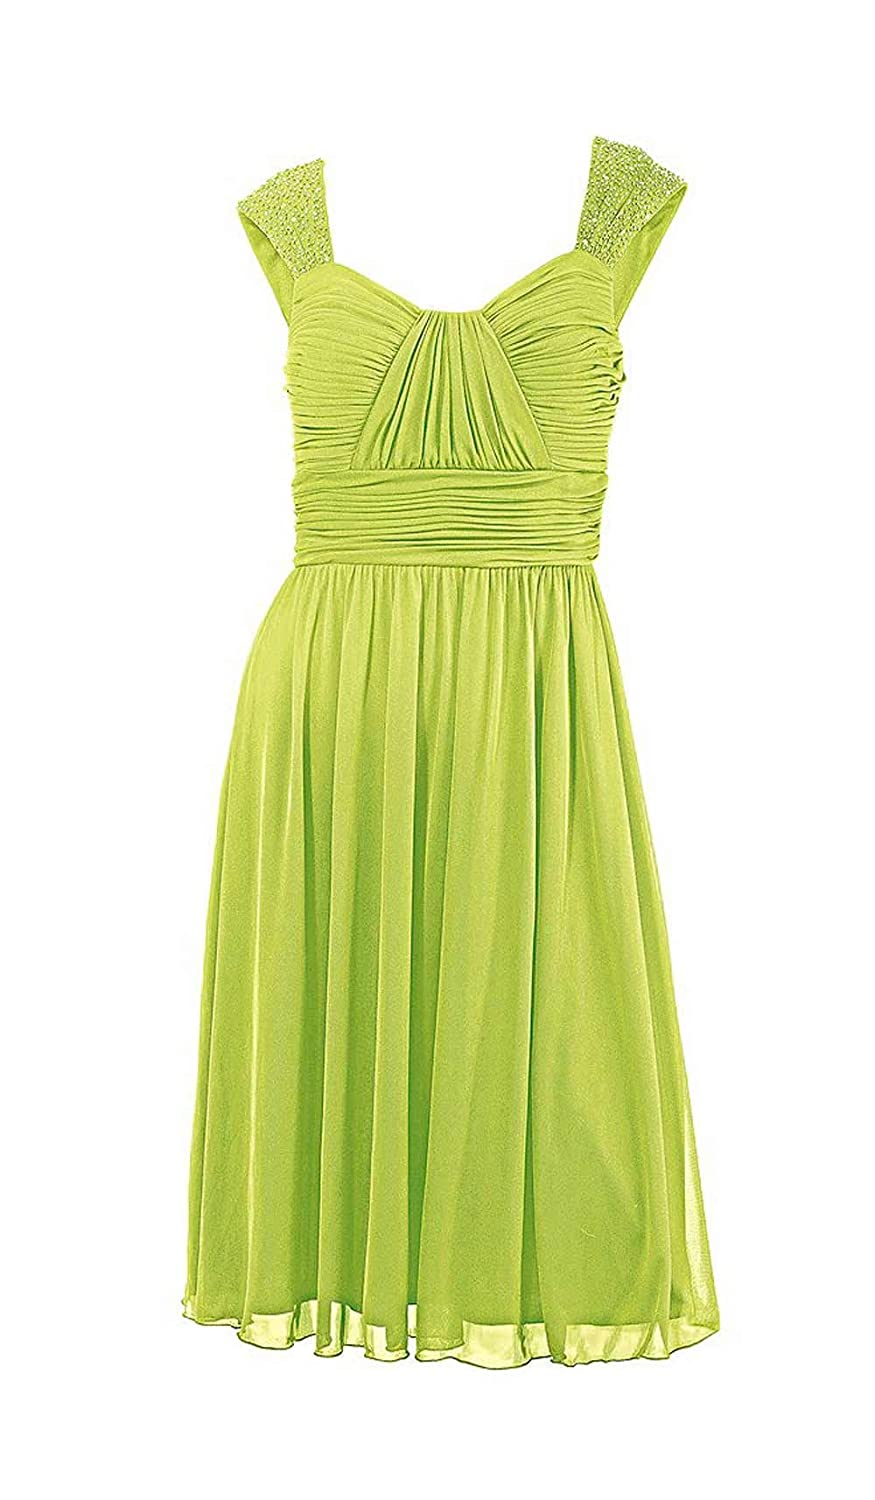 Ashley Brooke event Women's Cocktail Opaque Dress Multicoloured Kiwi